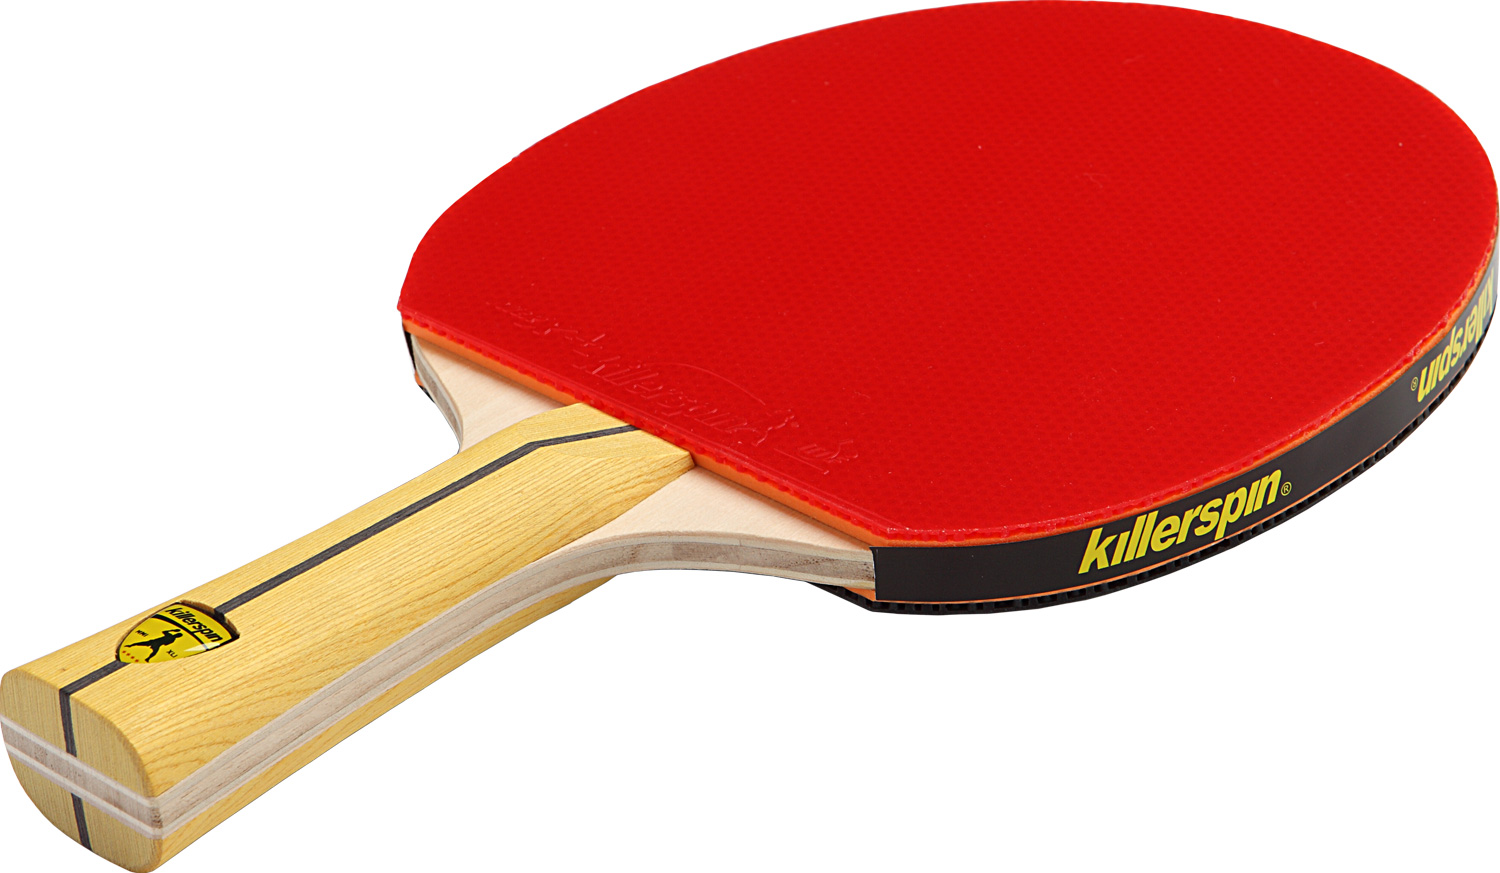 Image result for TABLE TENNIS RACKET